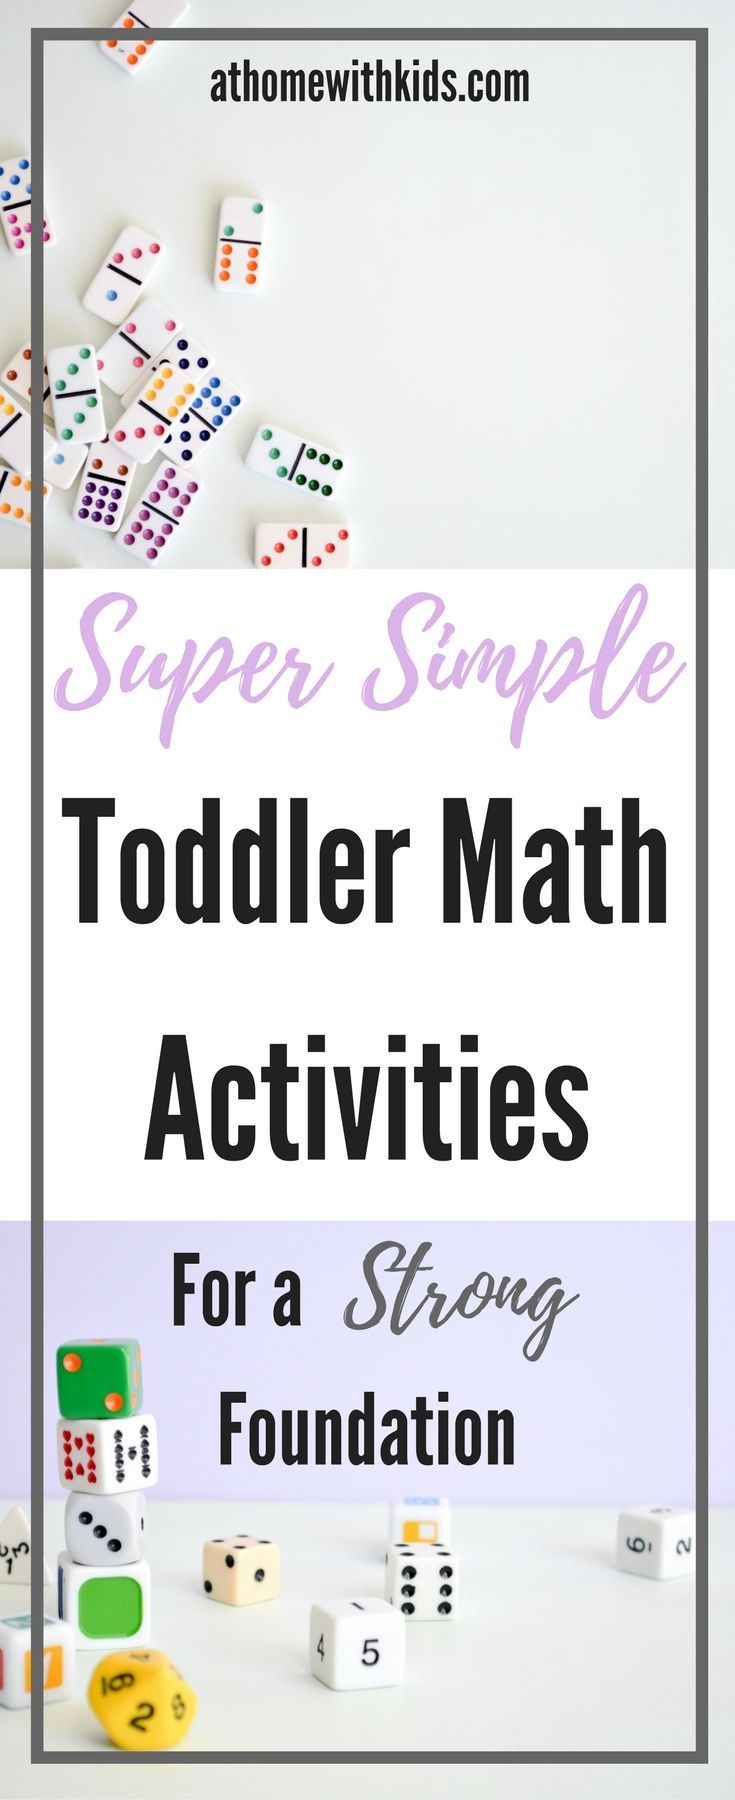 Super Simple Toddler Math Activities for a Strong Foundation